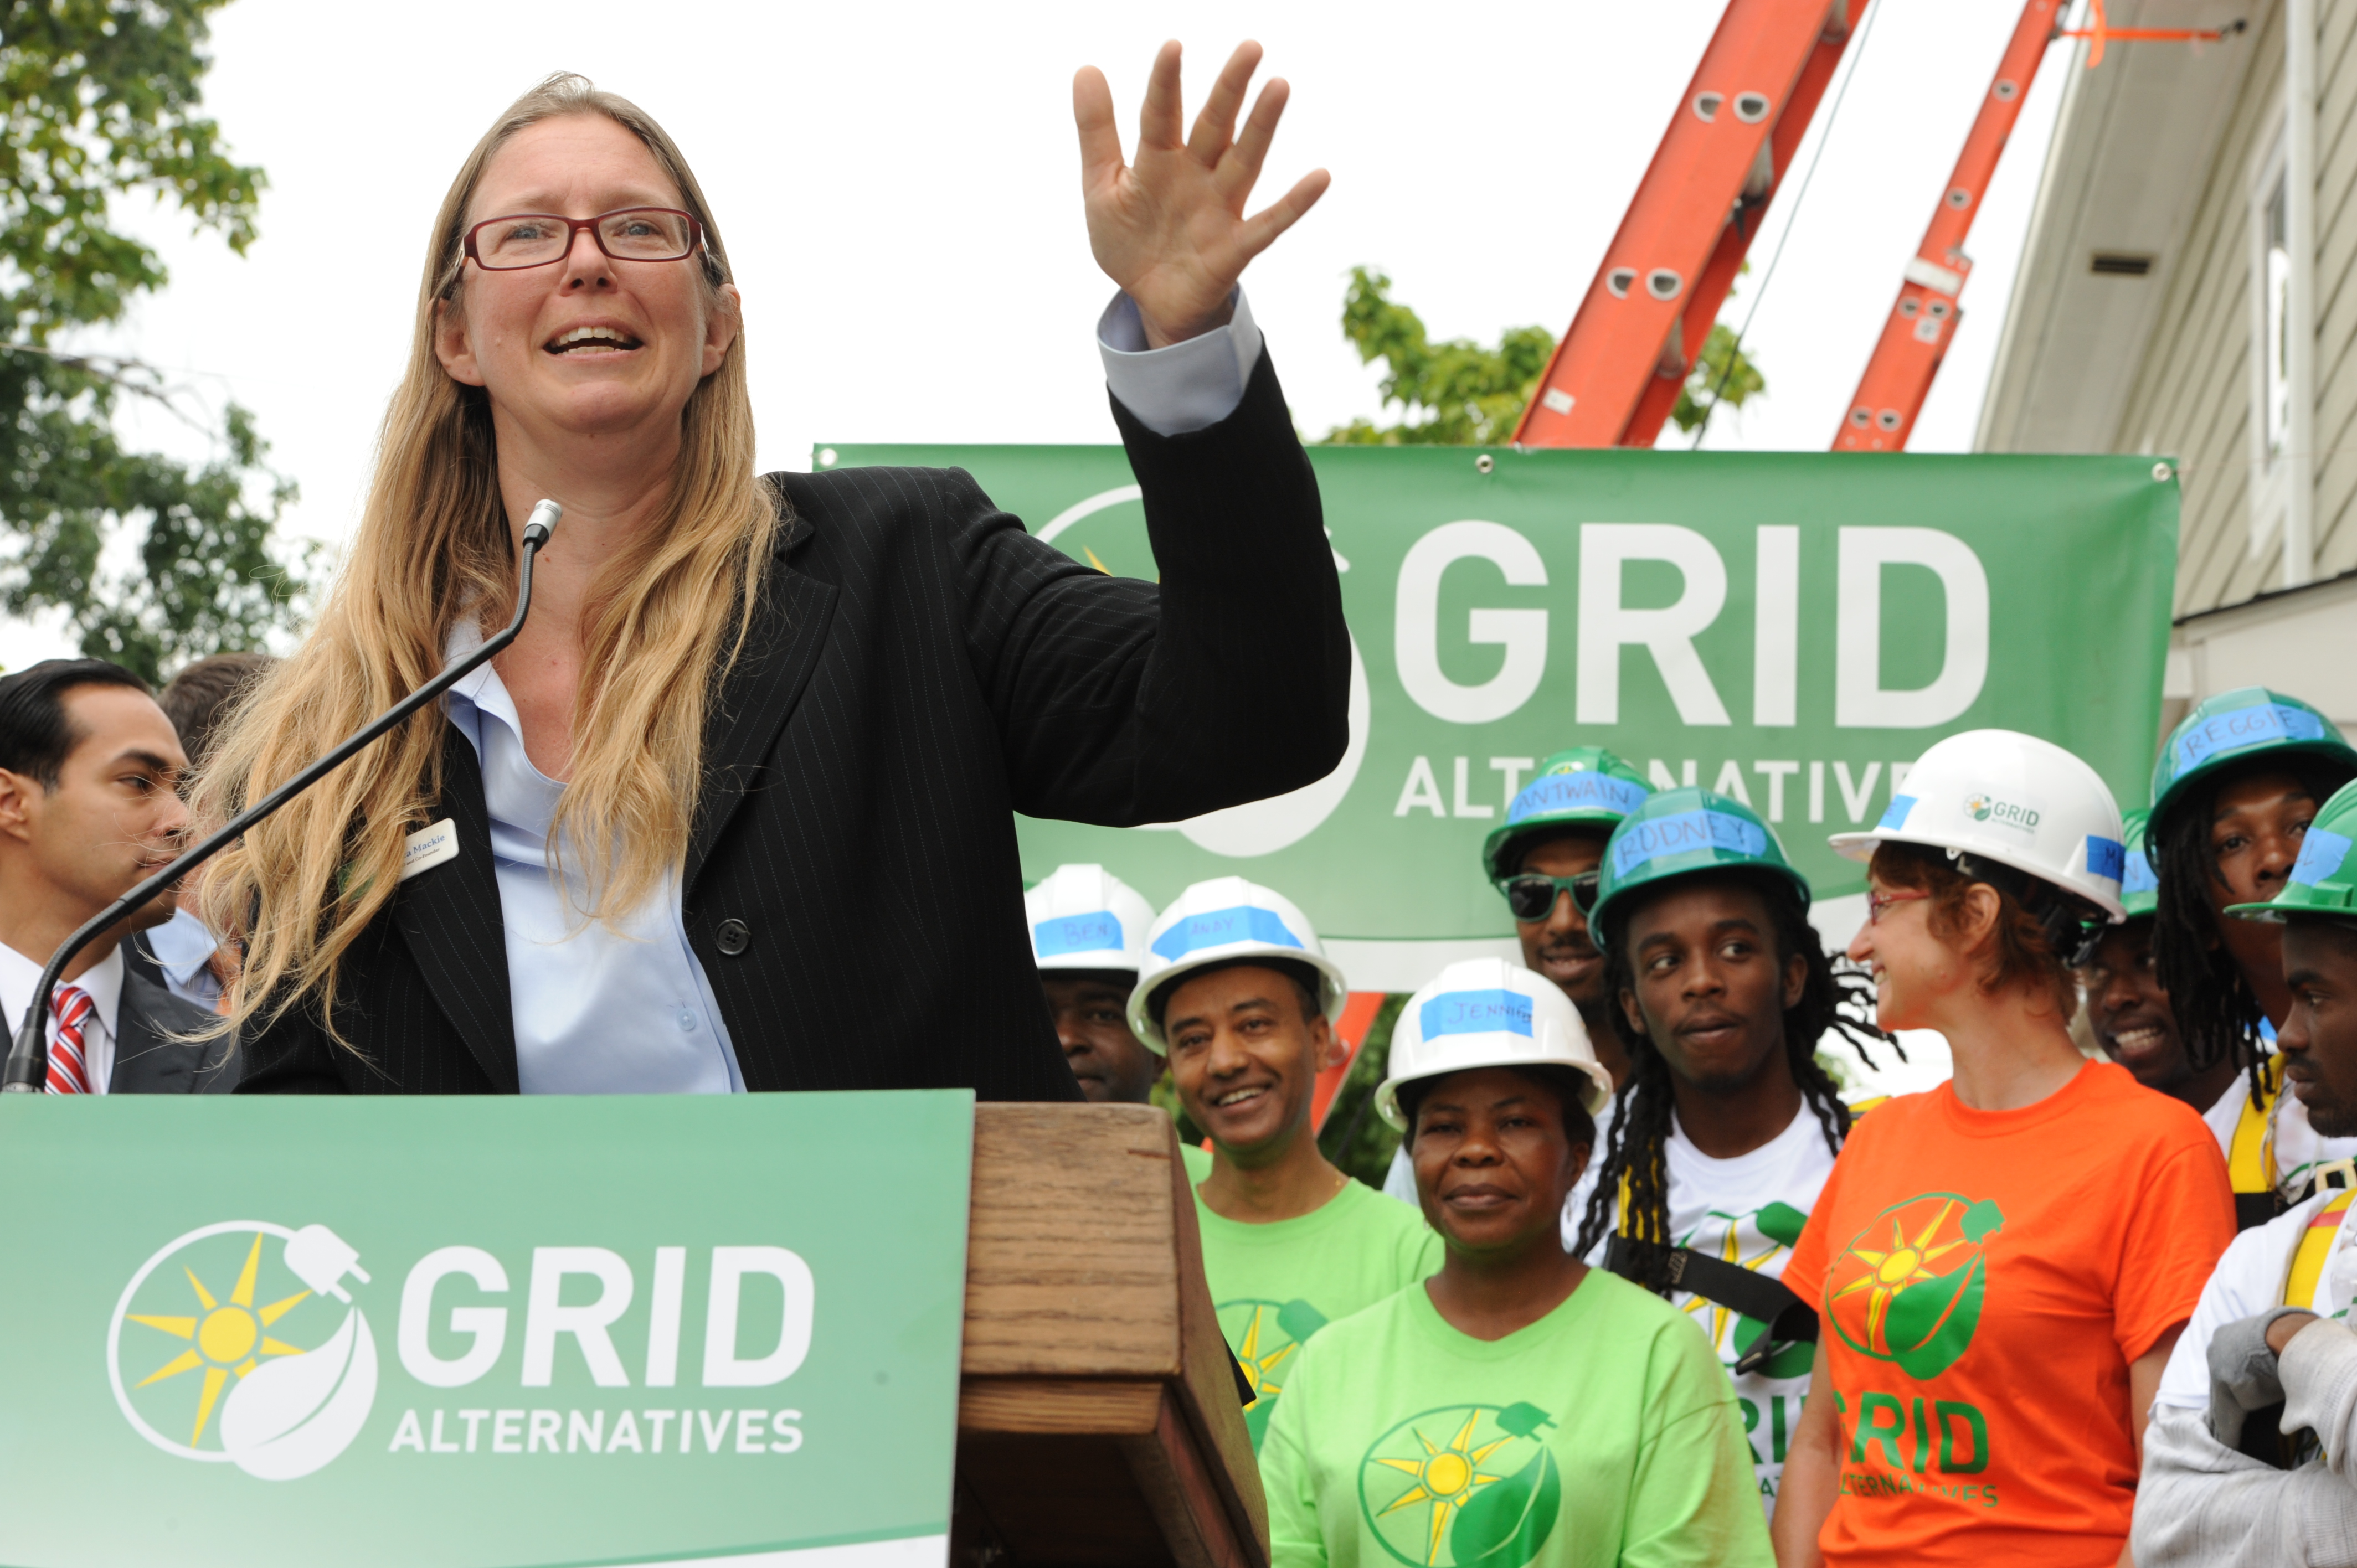 GRID Alternatives co-founder and CEO Erica Mackie speaks during GRID Mid-Atlantic's launch event in 2014.